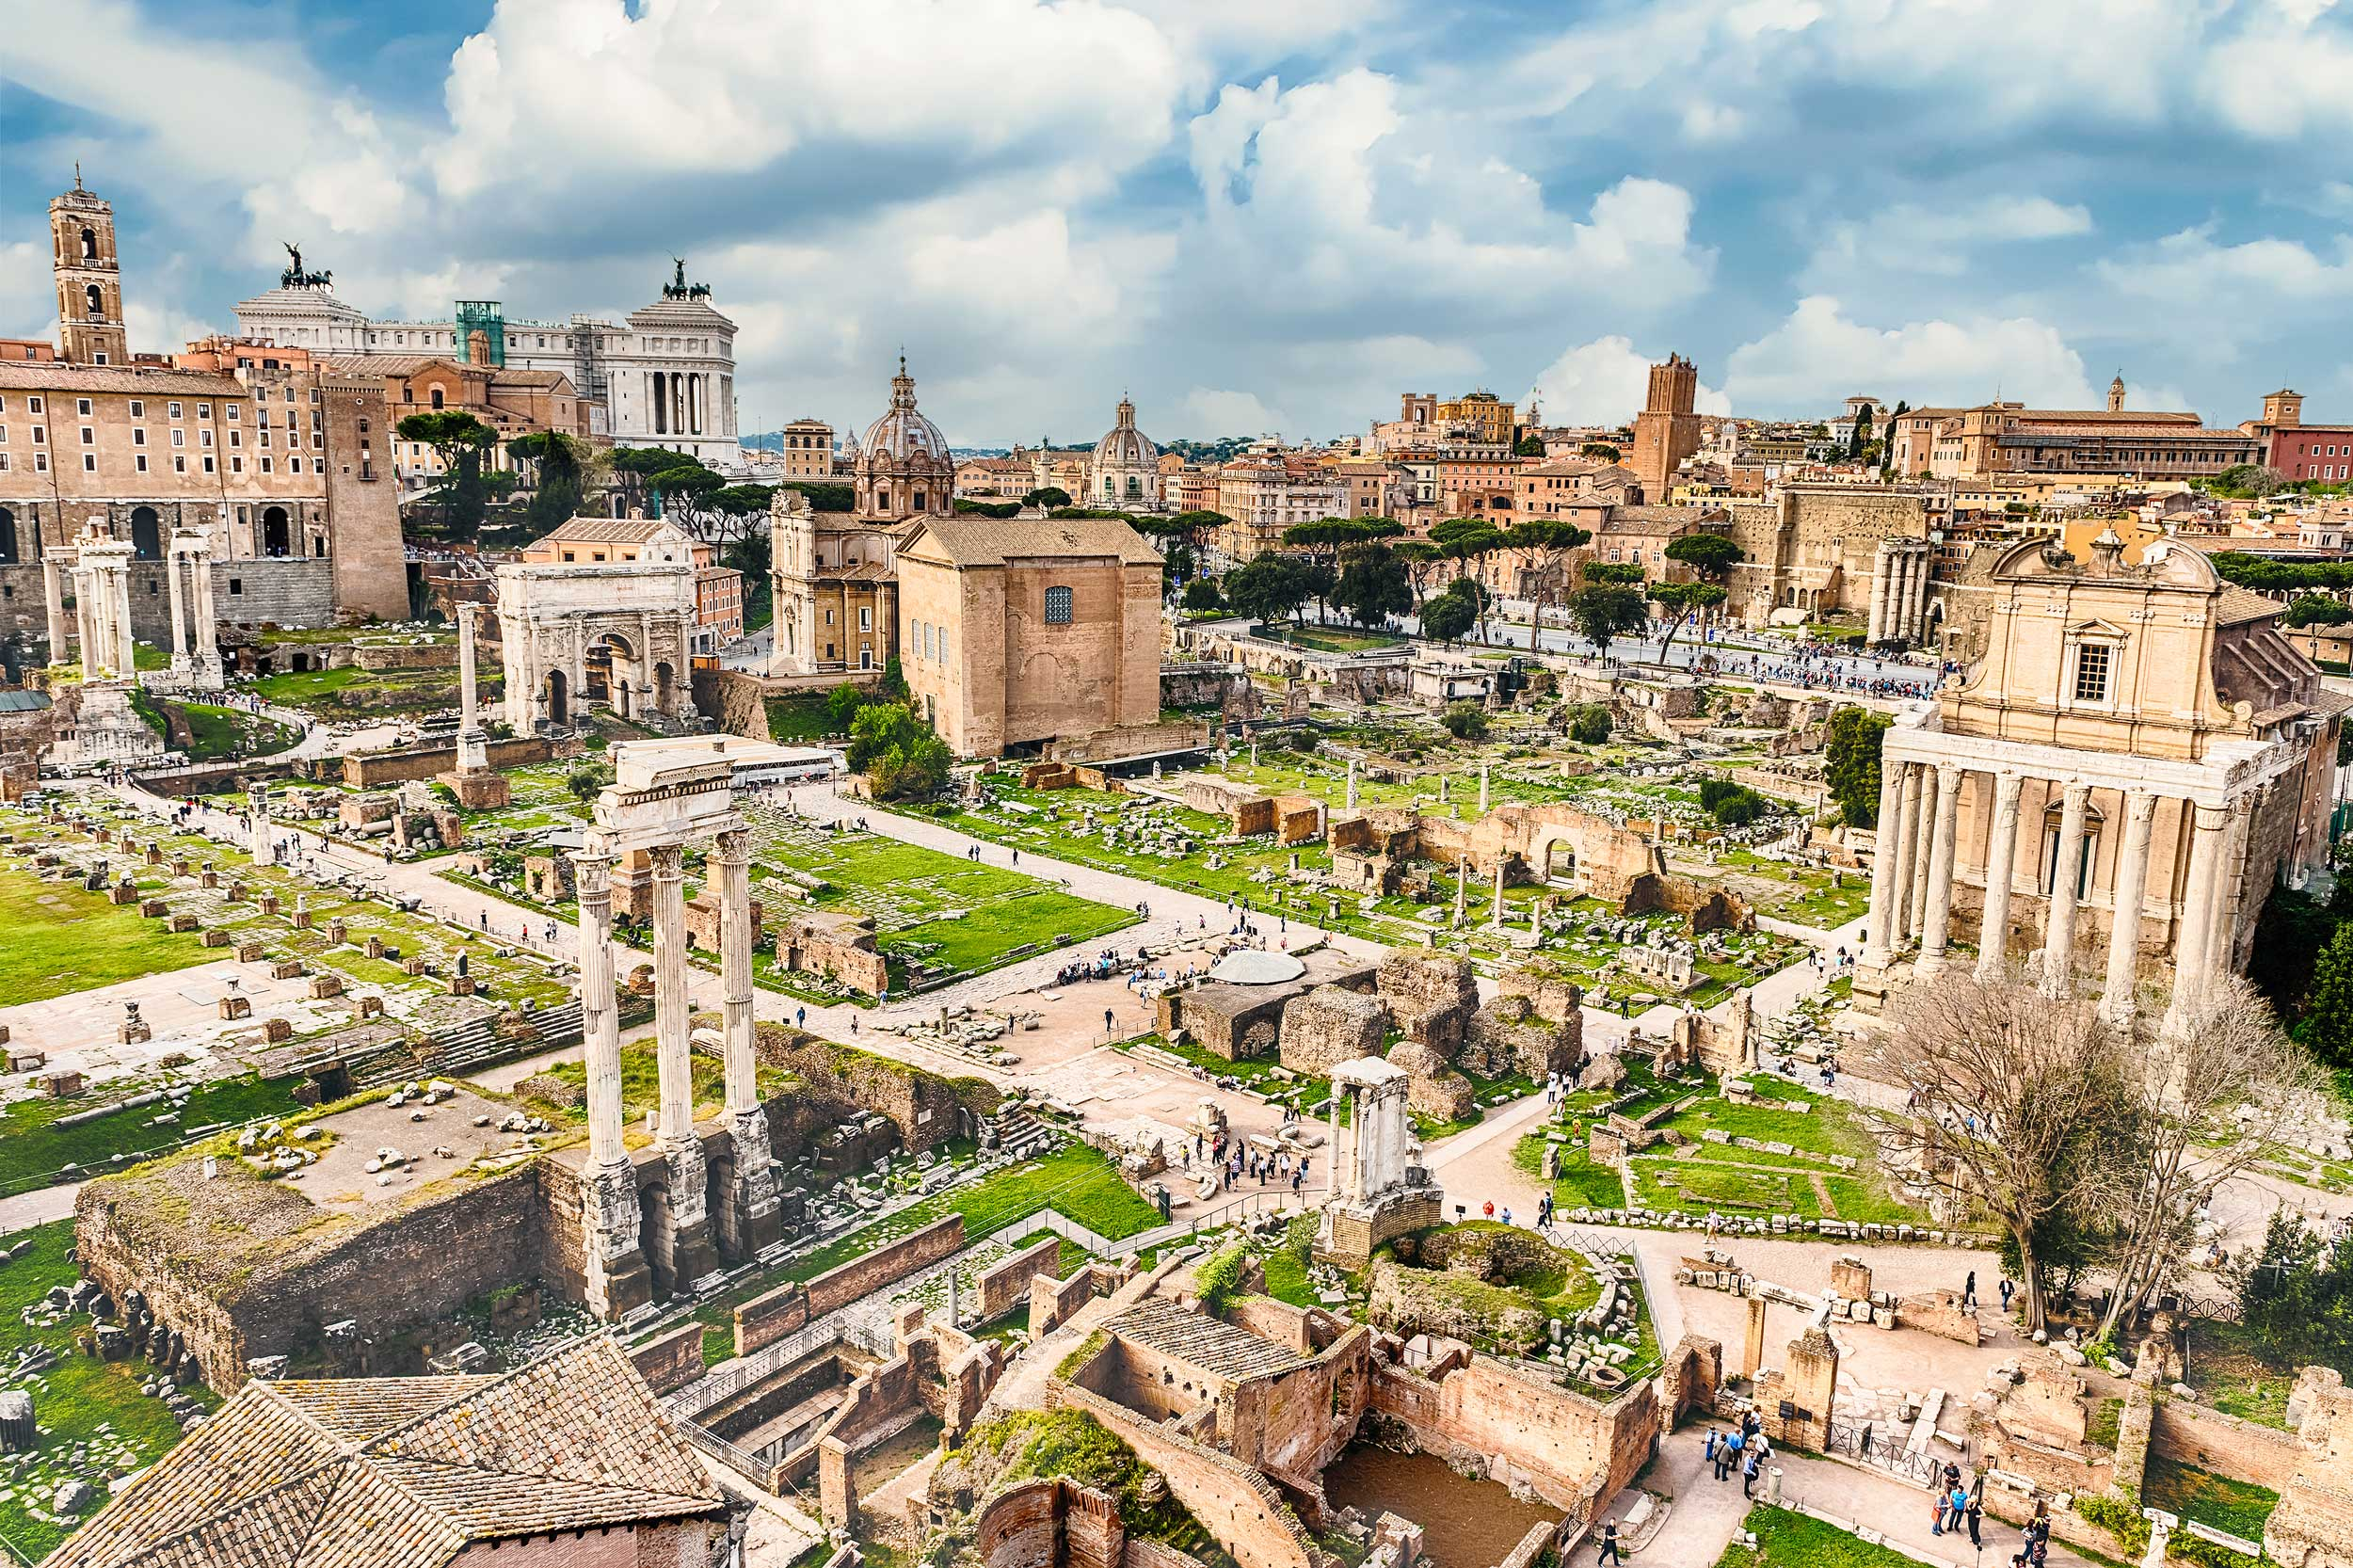 Ruined pillars and structures of the Forum, Rome